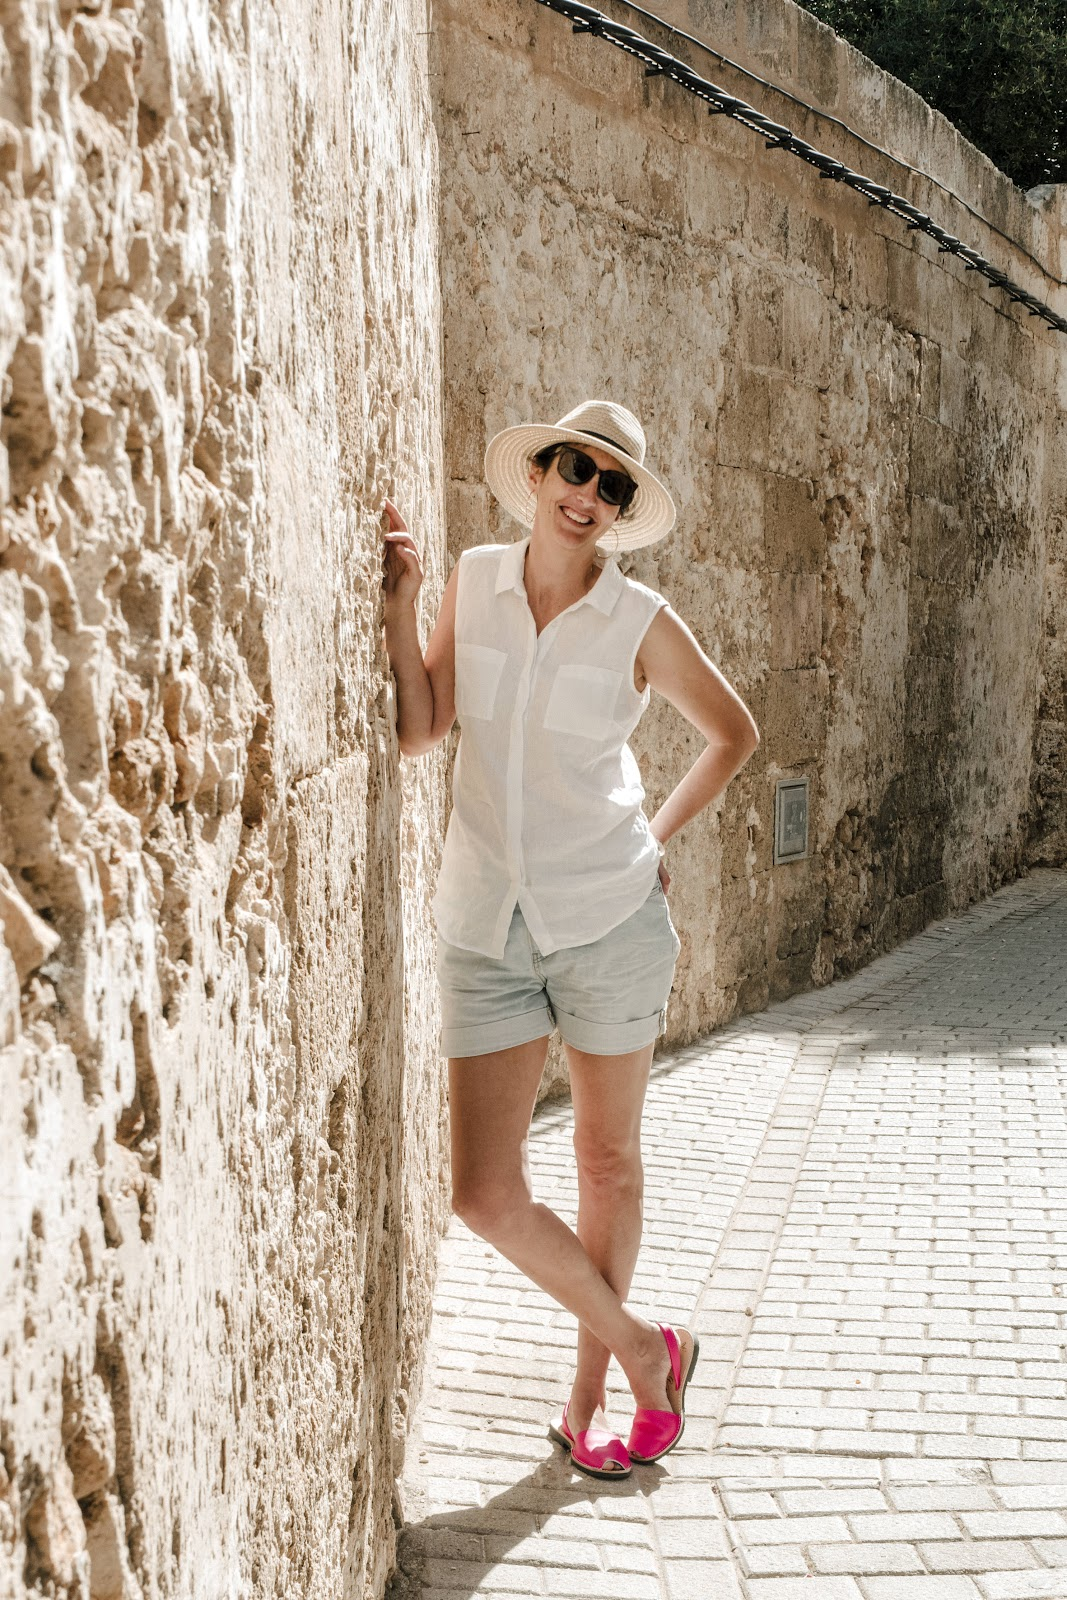 Owner Naomi leaning against a rock wall in Menorca wearing Neon Pink Avarcas